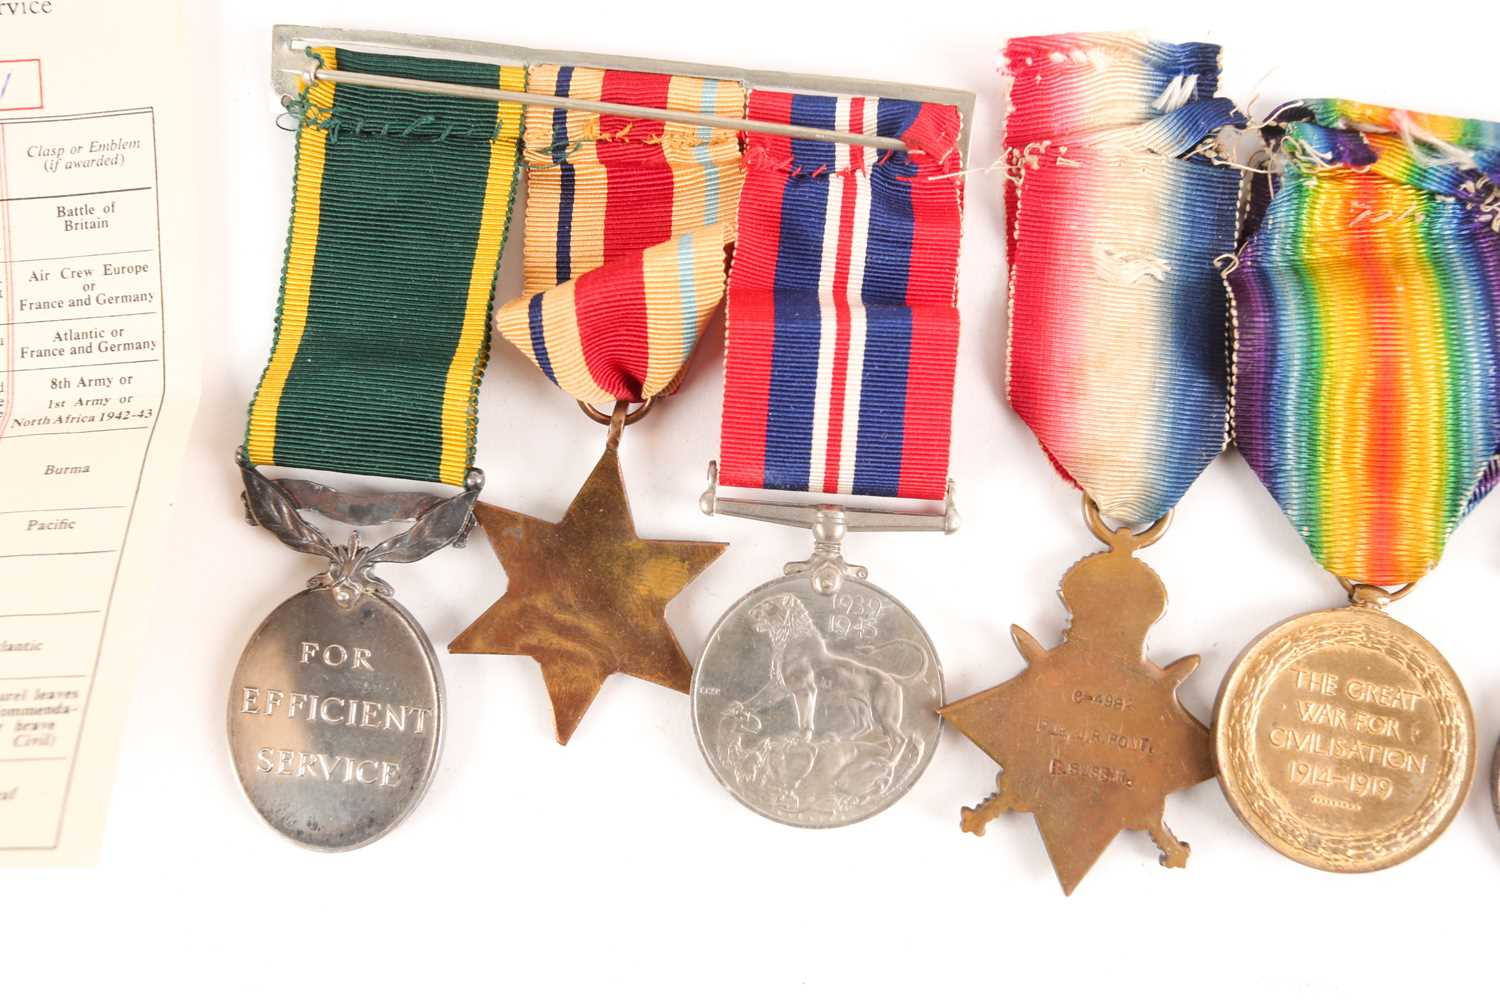 A WWI Campaign, Victory Medal and 1914-1918 Star, to G-4982 PTE. J.R. Pont, Royal Sussex Regiment, - Image 2 of 10